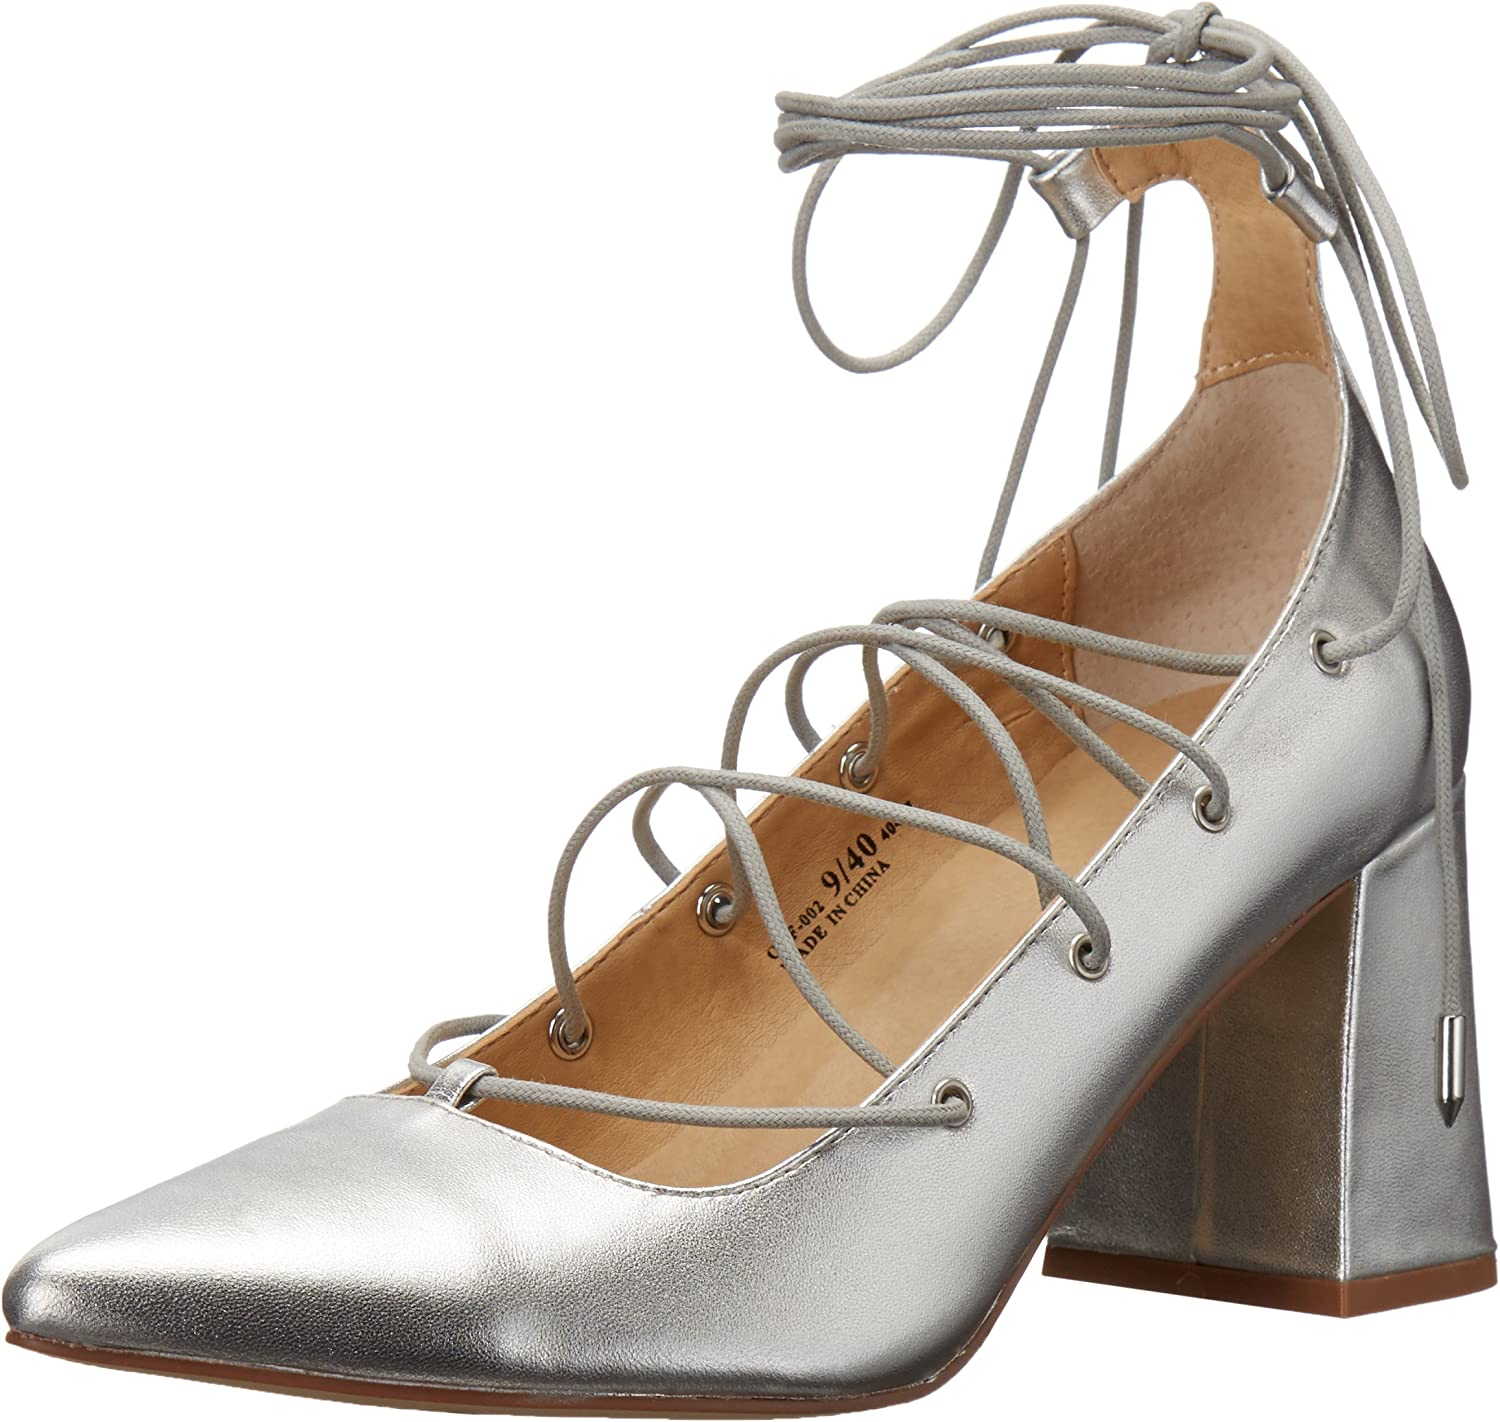 Chinese Laundry Women's Odelle Dress Pump, Silver Metallic,11 M US